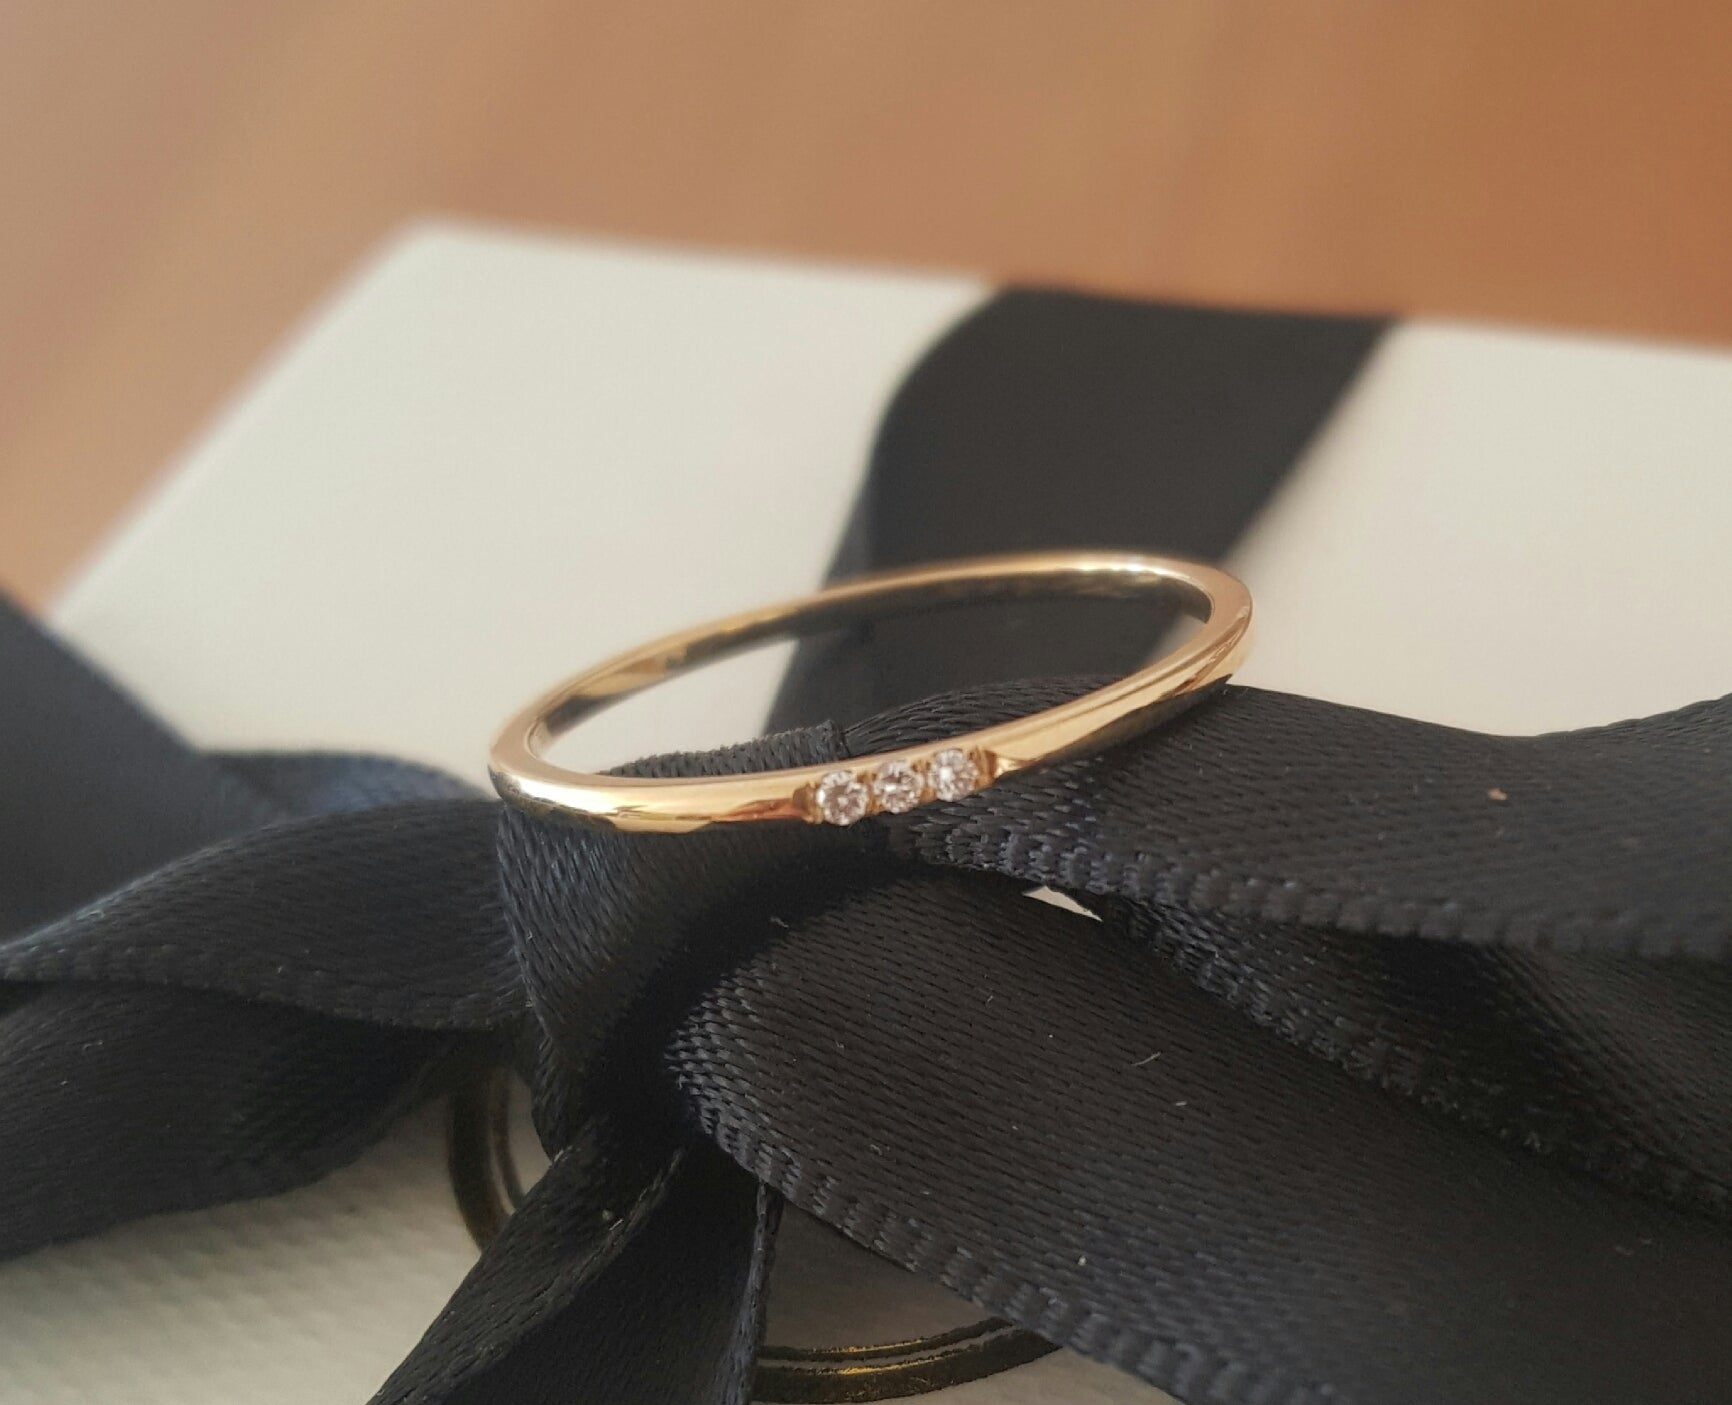 Solid 18ct Yellow Gold and 3 Diamond Minimalist Wedding Anniversary Engagement Dress Band Ring Size 5.5